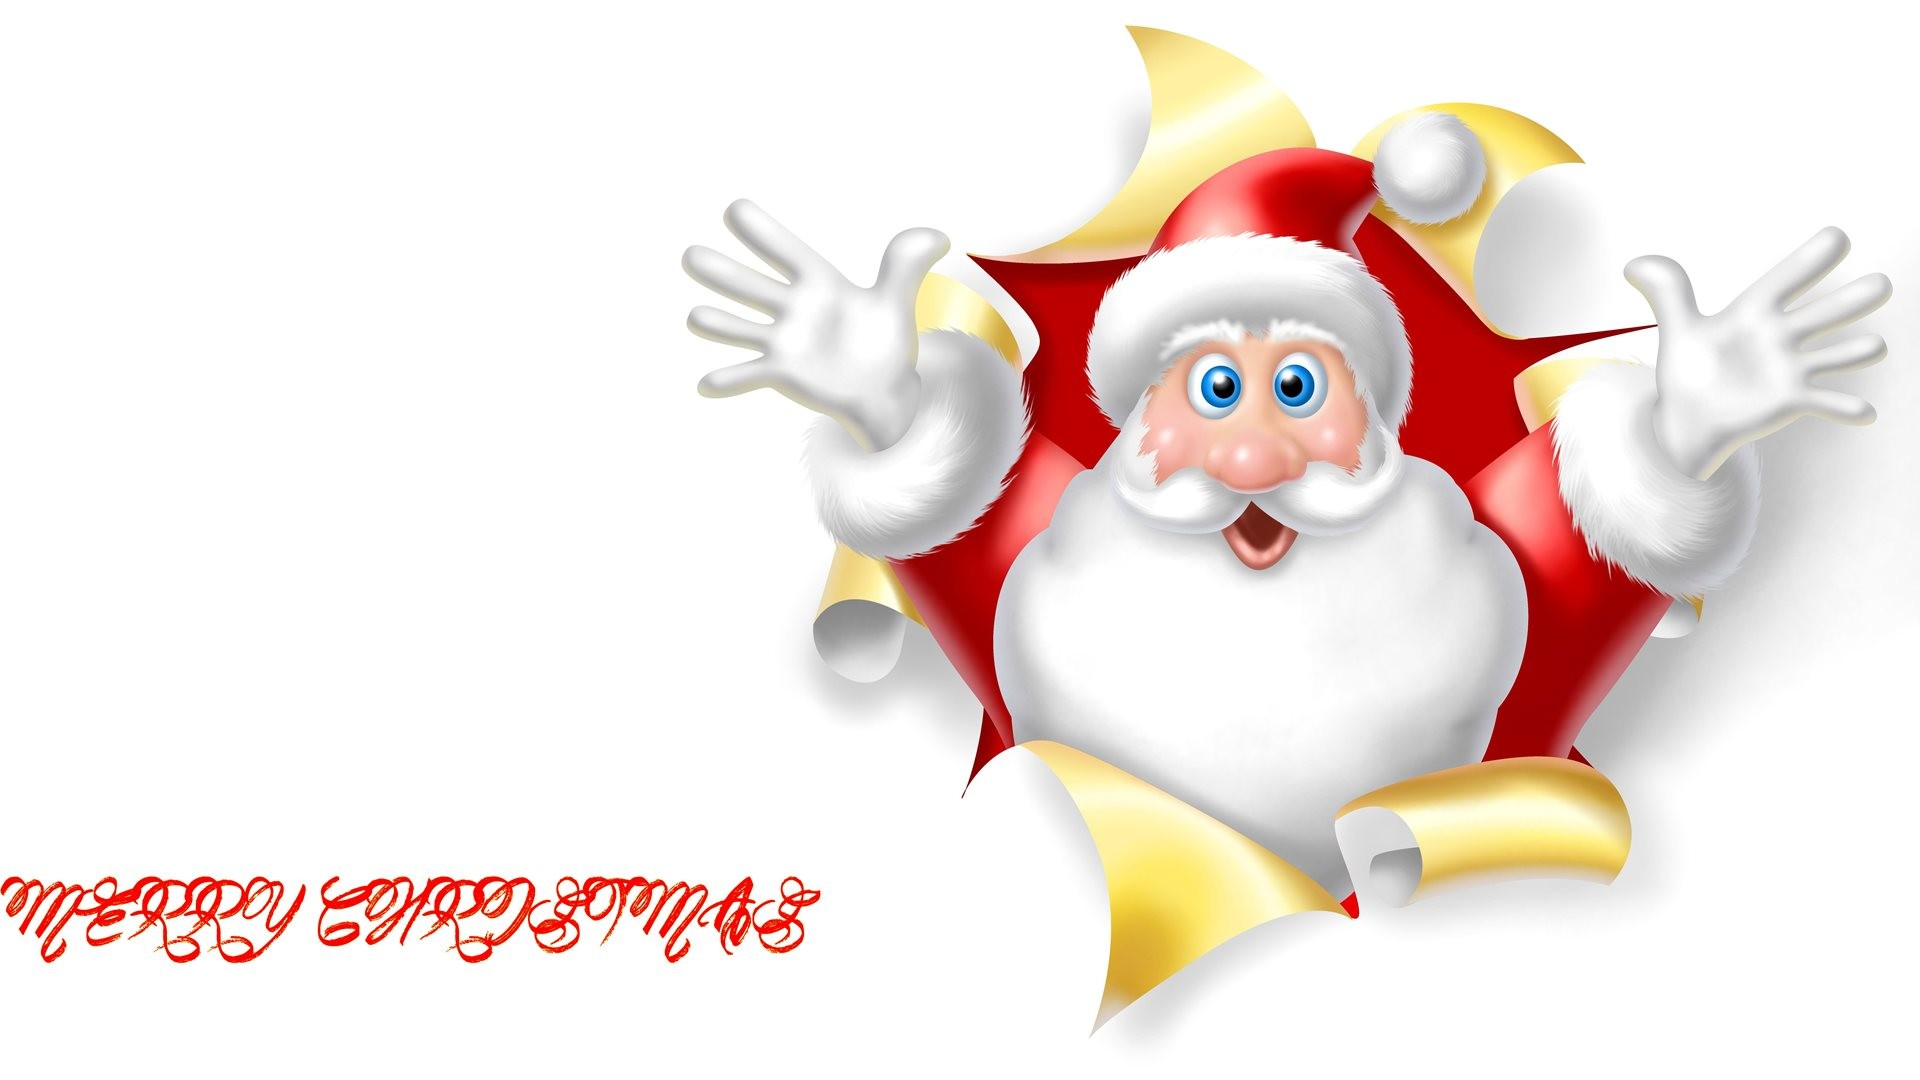 Res: 1920x1080, 2. funny-merry-christmas-images2-600x338